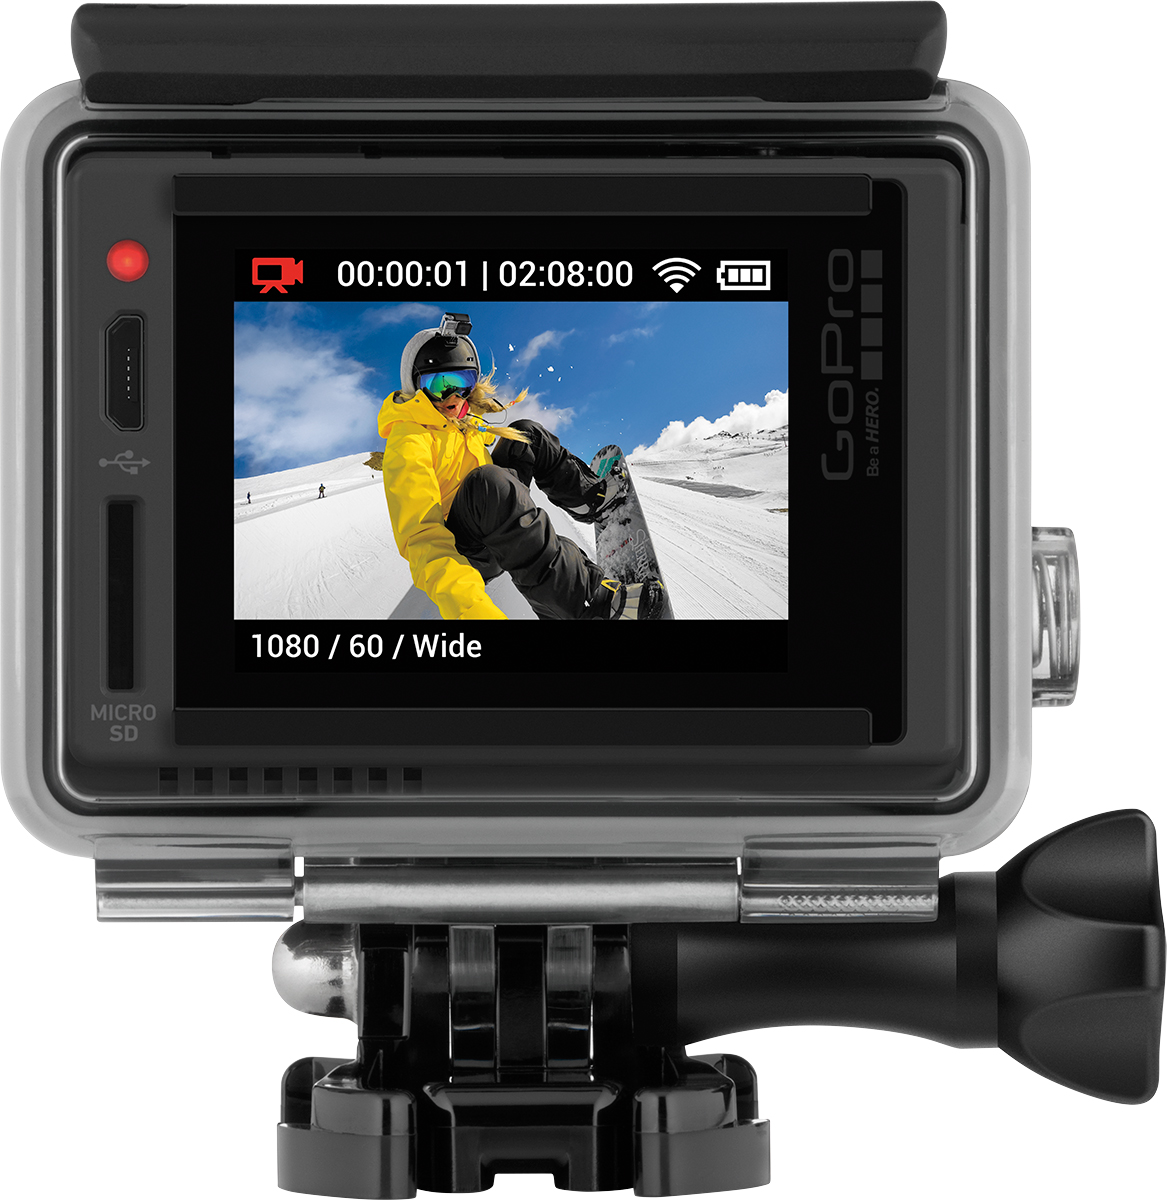 GoPro HERO+-LCD Camera - back shot  GoPro HERO+ LCD Launch at Best Buy Plus Special Offers  #GoProatBestBuy  @GoPro  @BestBuy ad